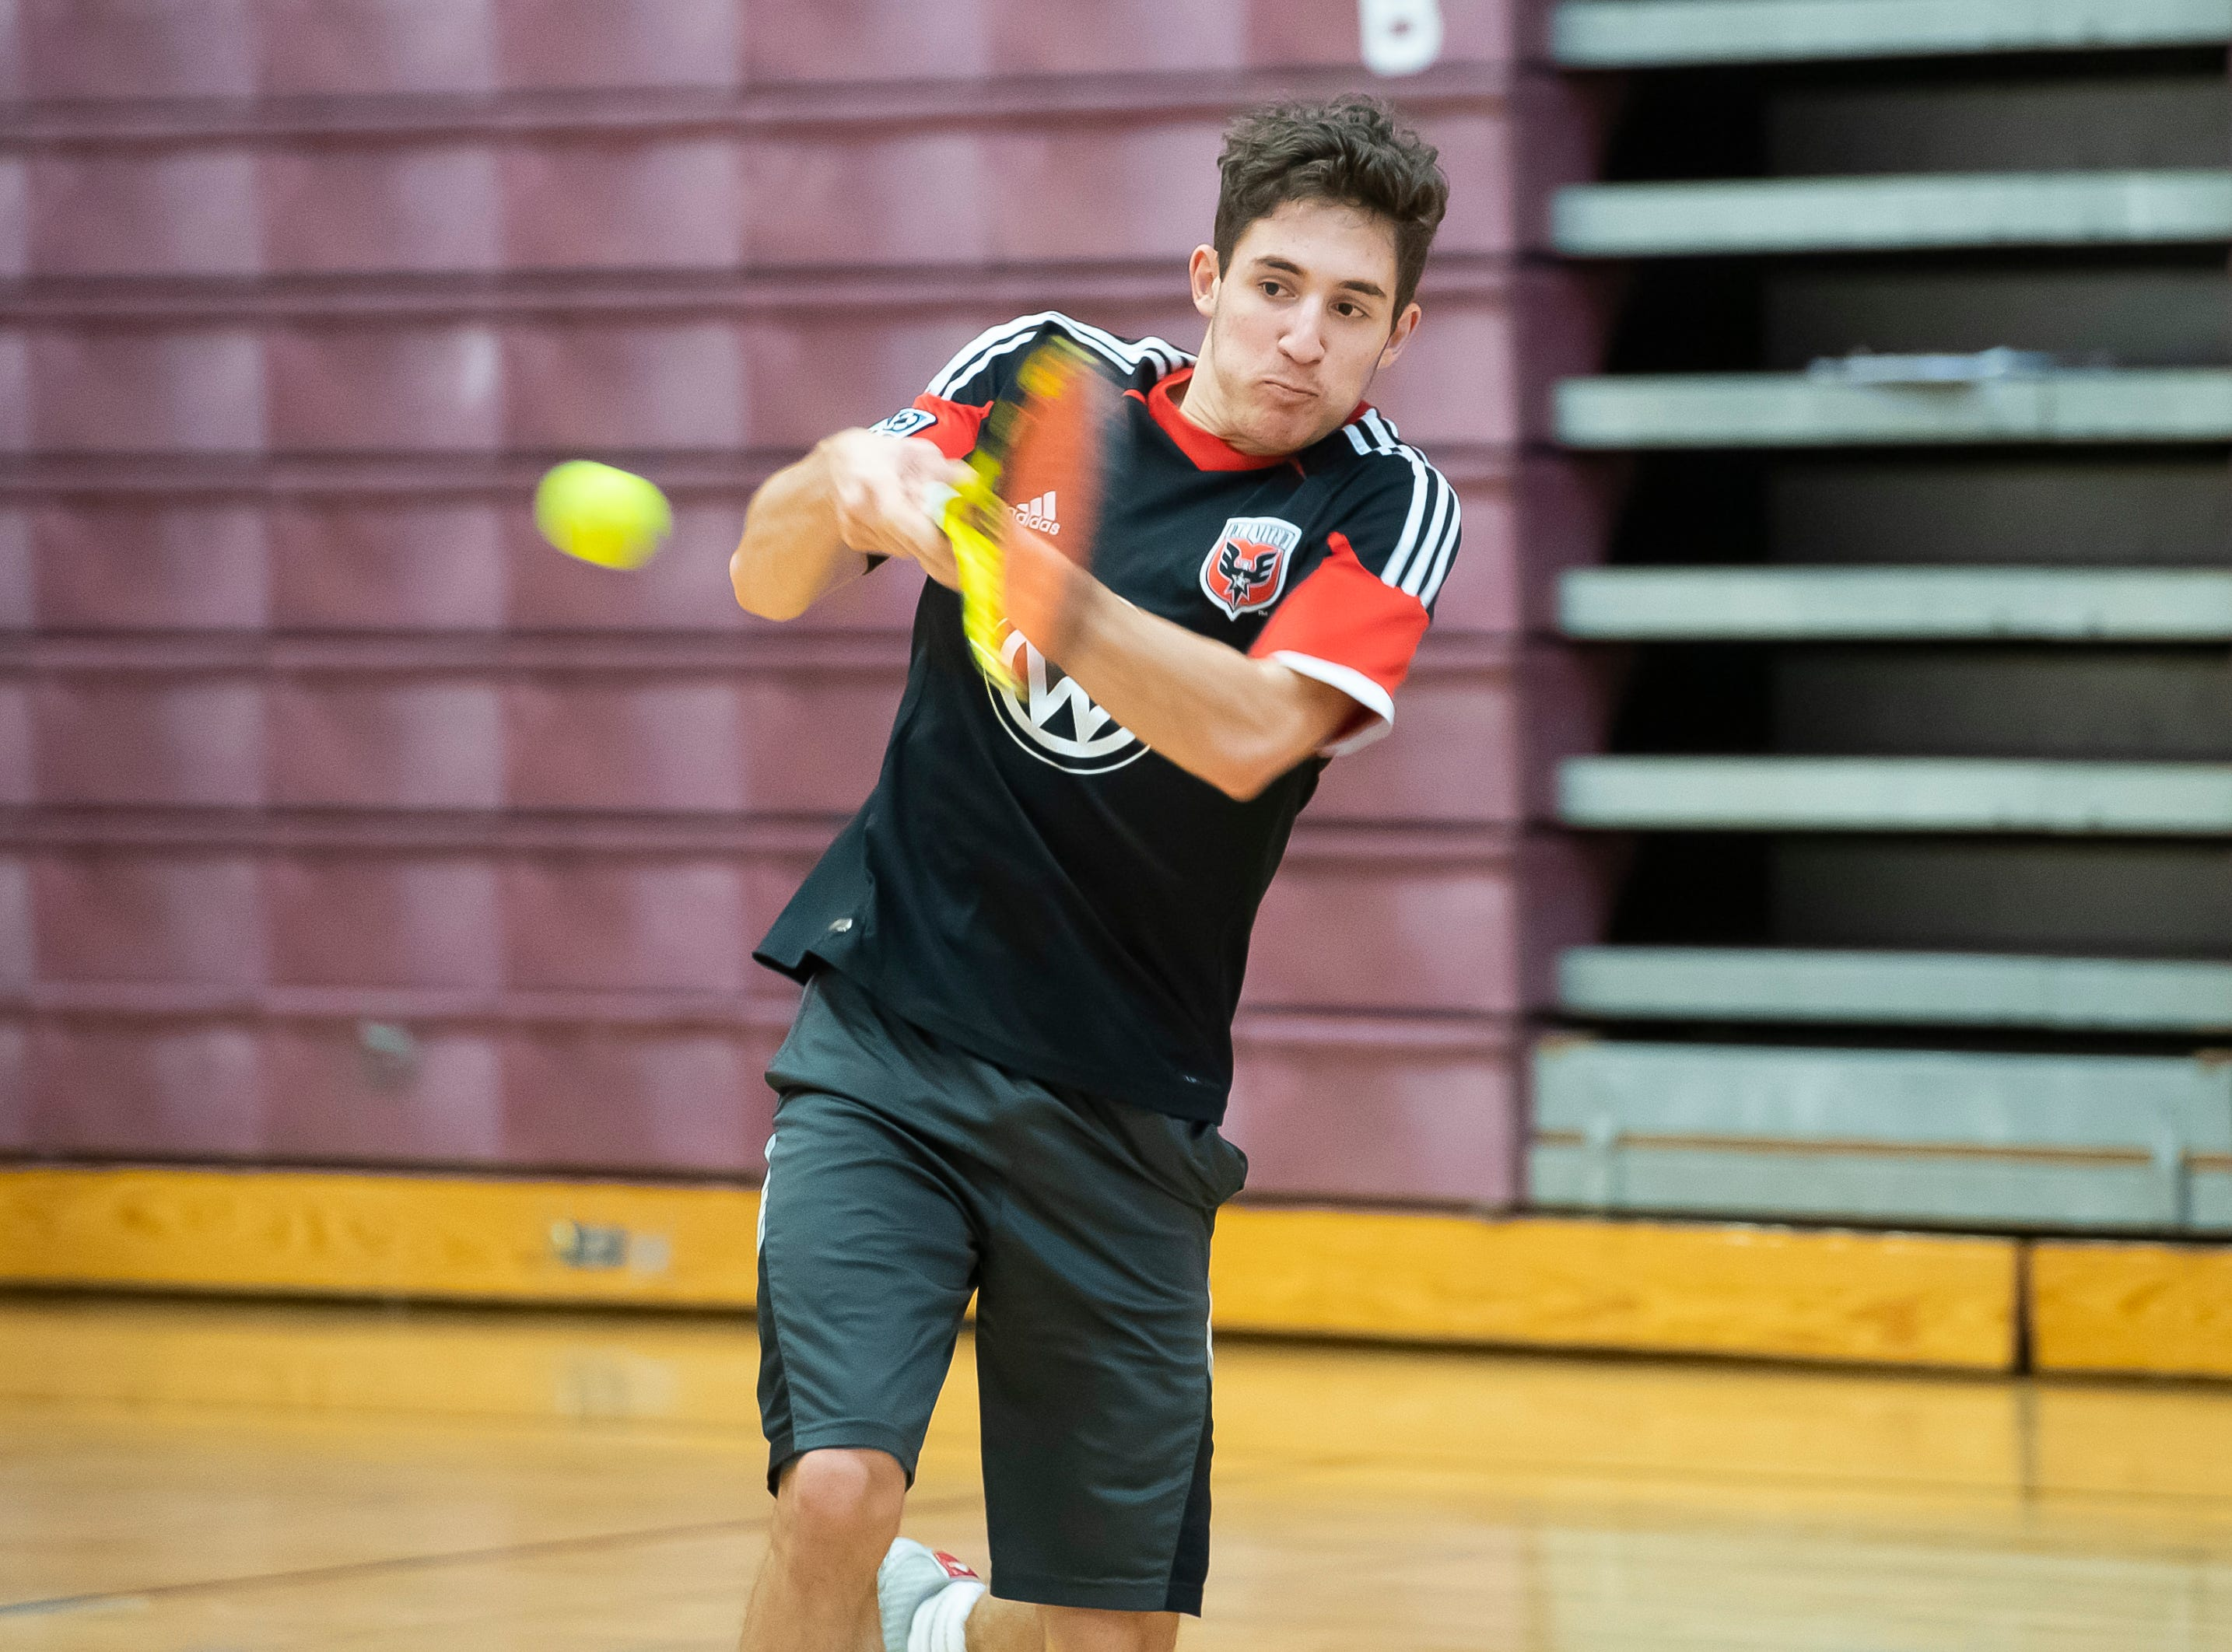 Gettysburg's Drew Heinzelmann hits the ball during a tennis drill on the first day of spring sports practice Monday, March 4, 2019.